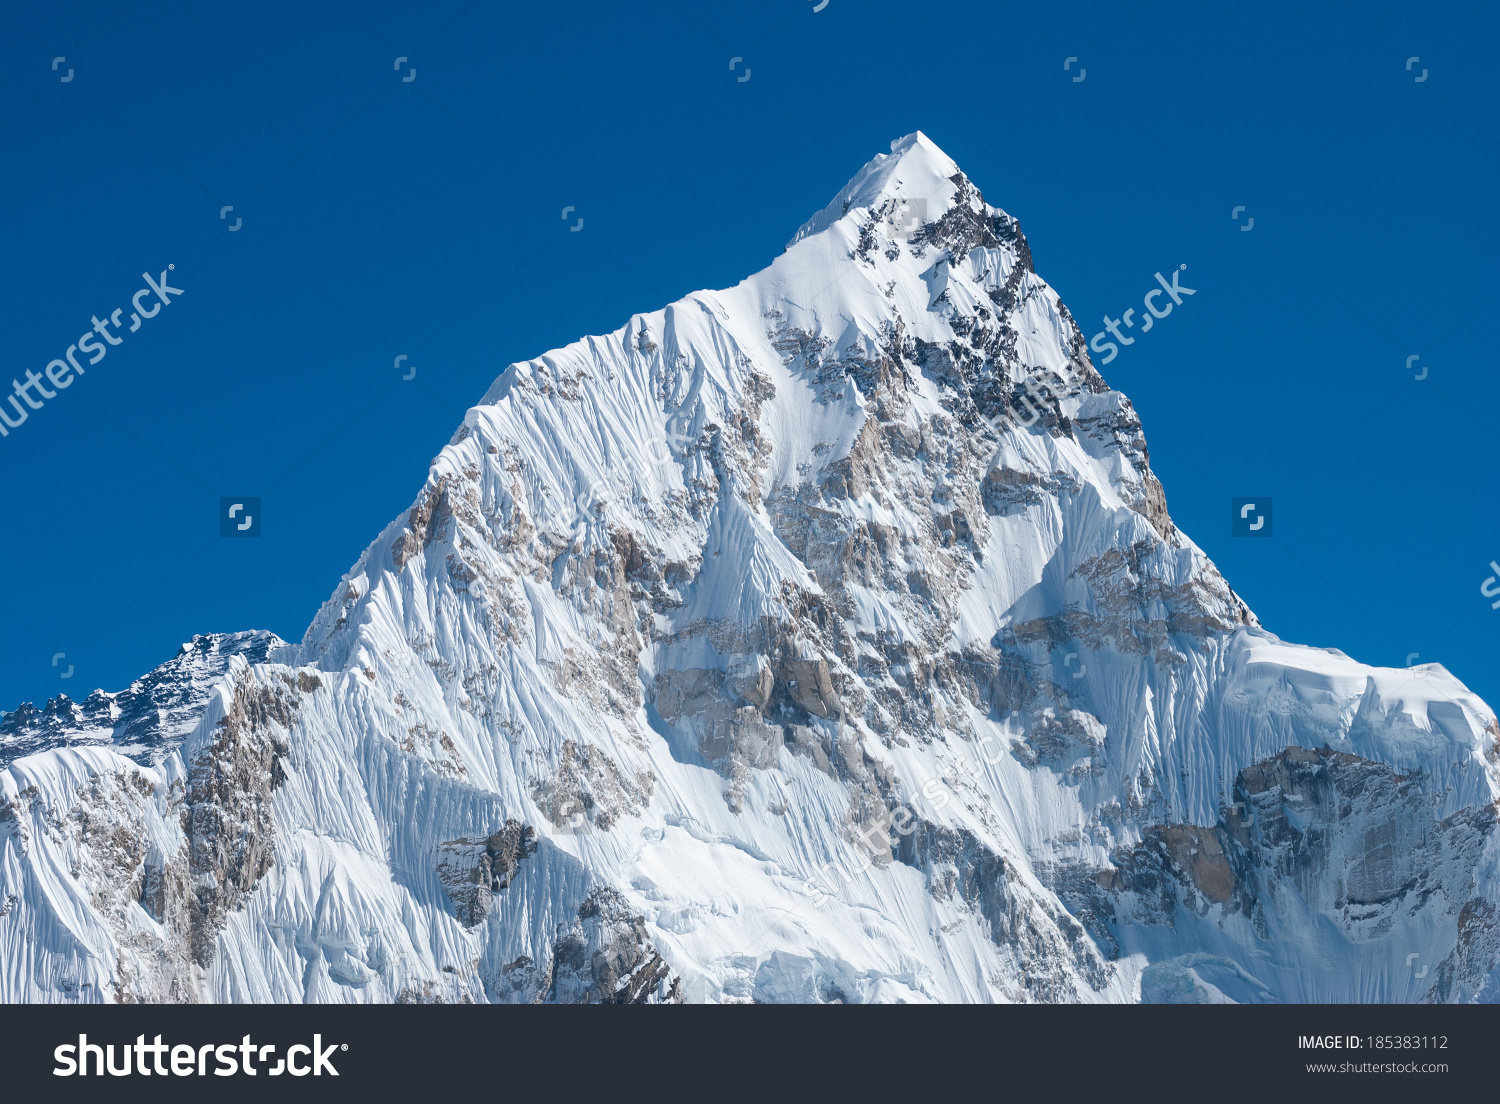 Nuptse 7861m Mountain Khumbu Region Mahalangur Stock Photo.